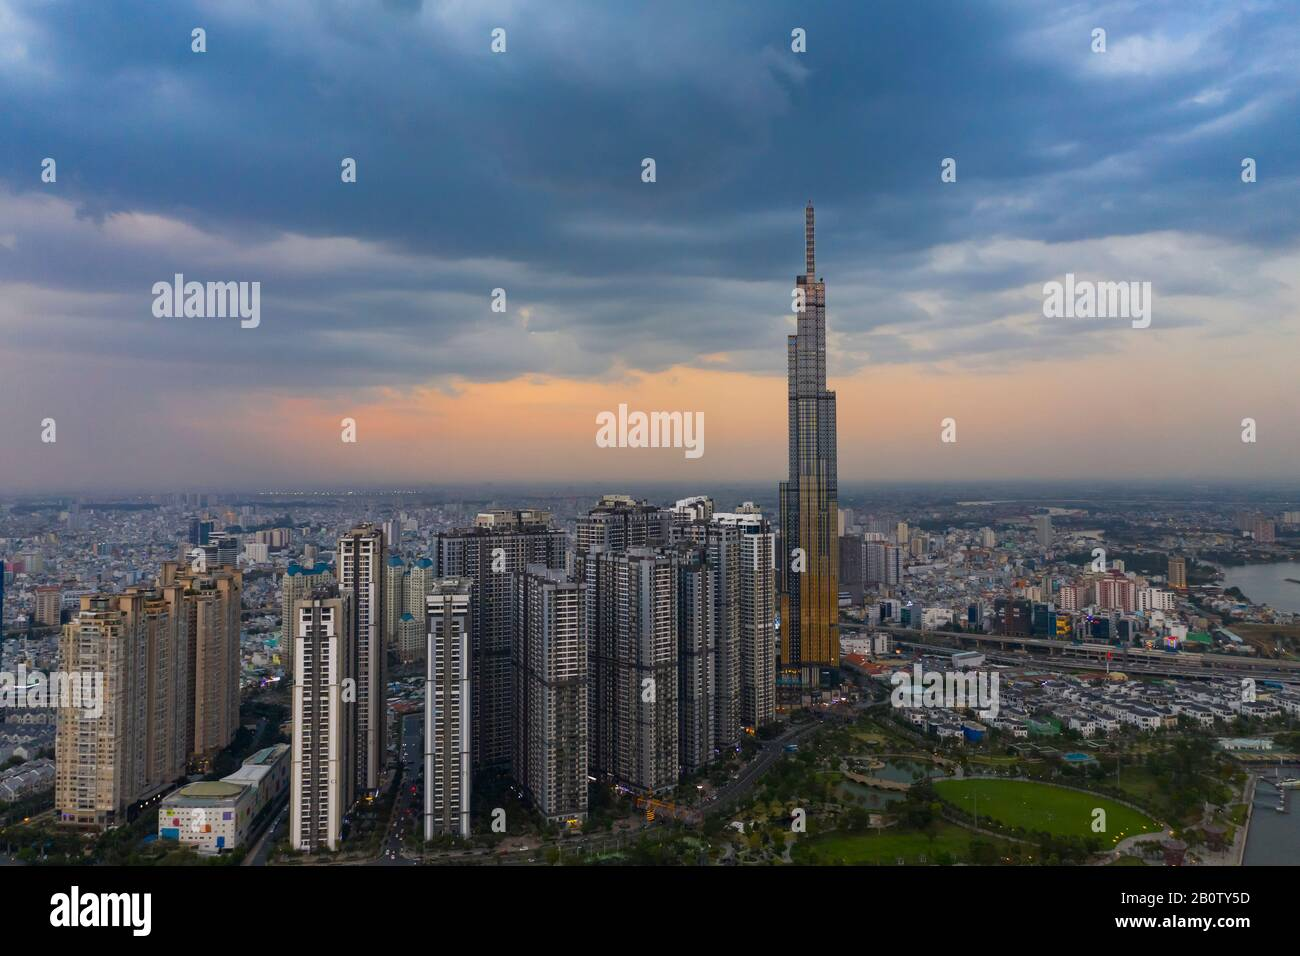 Dramatic aerial view of Landmark Building and Ho Chi Minh City skyline at sunset with beautiful stormy and dark clouds in the sky Stock Photo